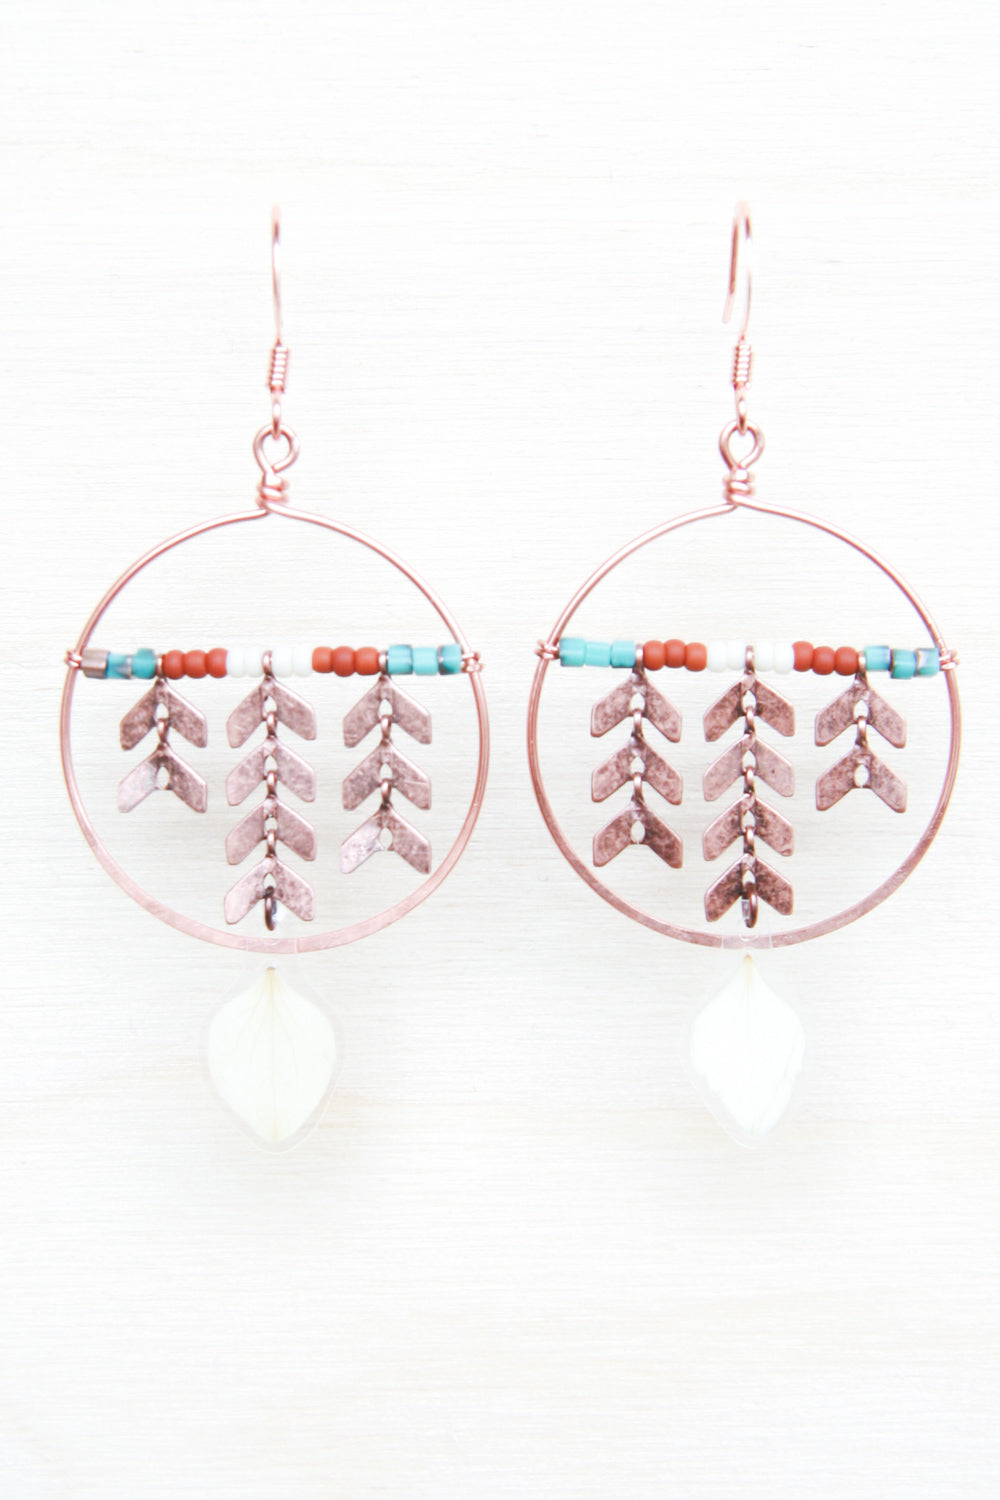 White Hydrangea Pressed Petal Earrings with Copper Chevron & Hoops - Terracotta, Cream & Turquoise